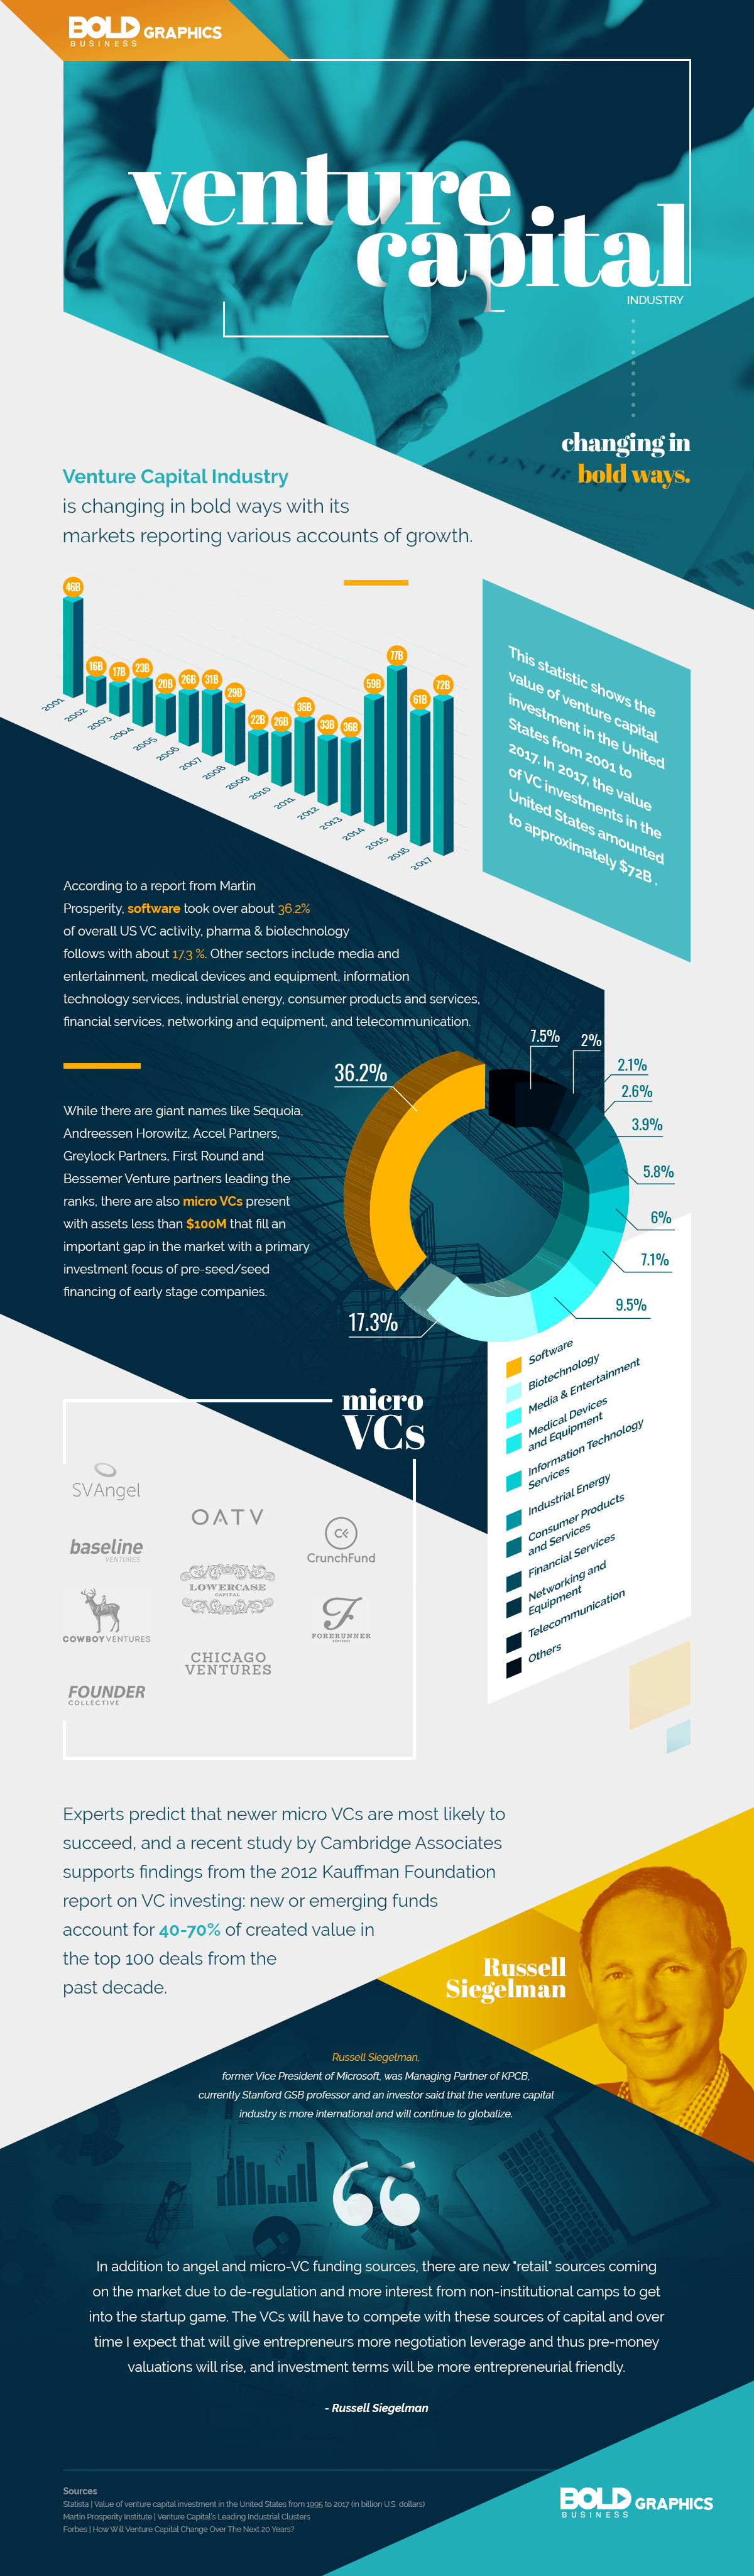 changes in venture capital industry infographic